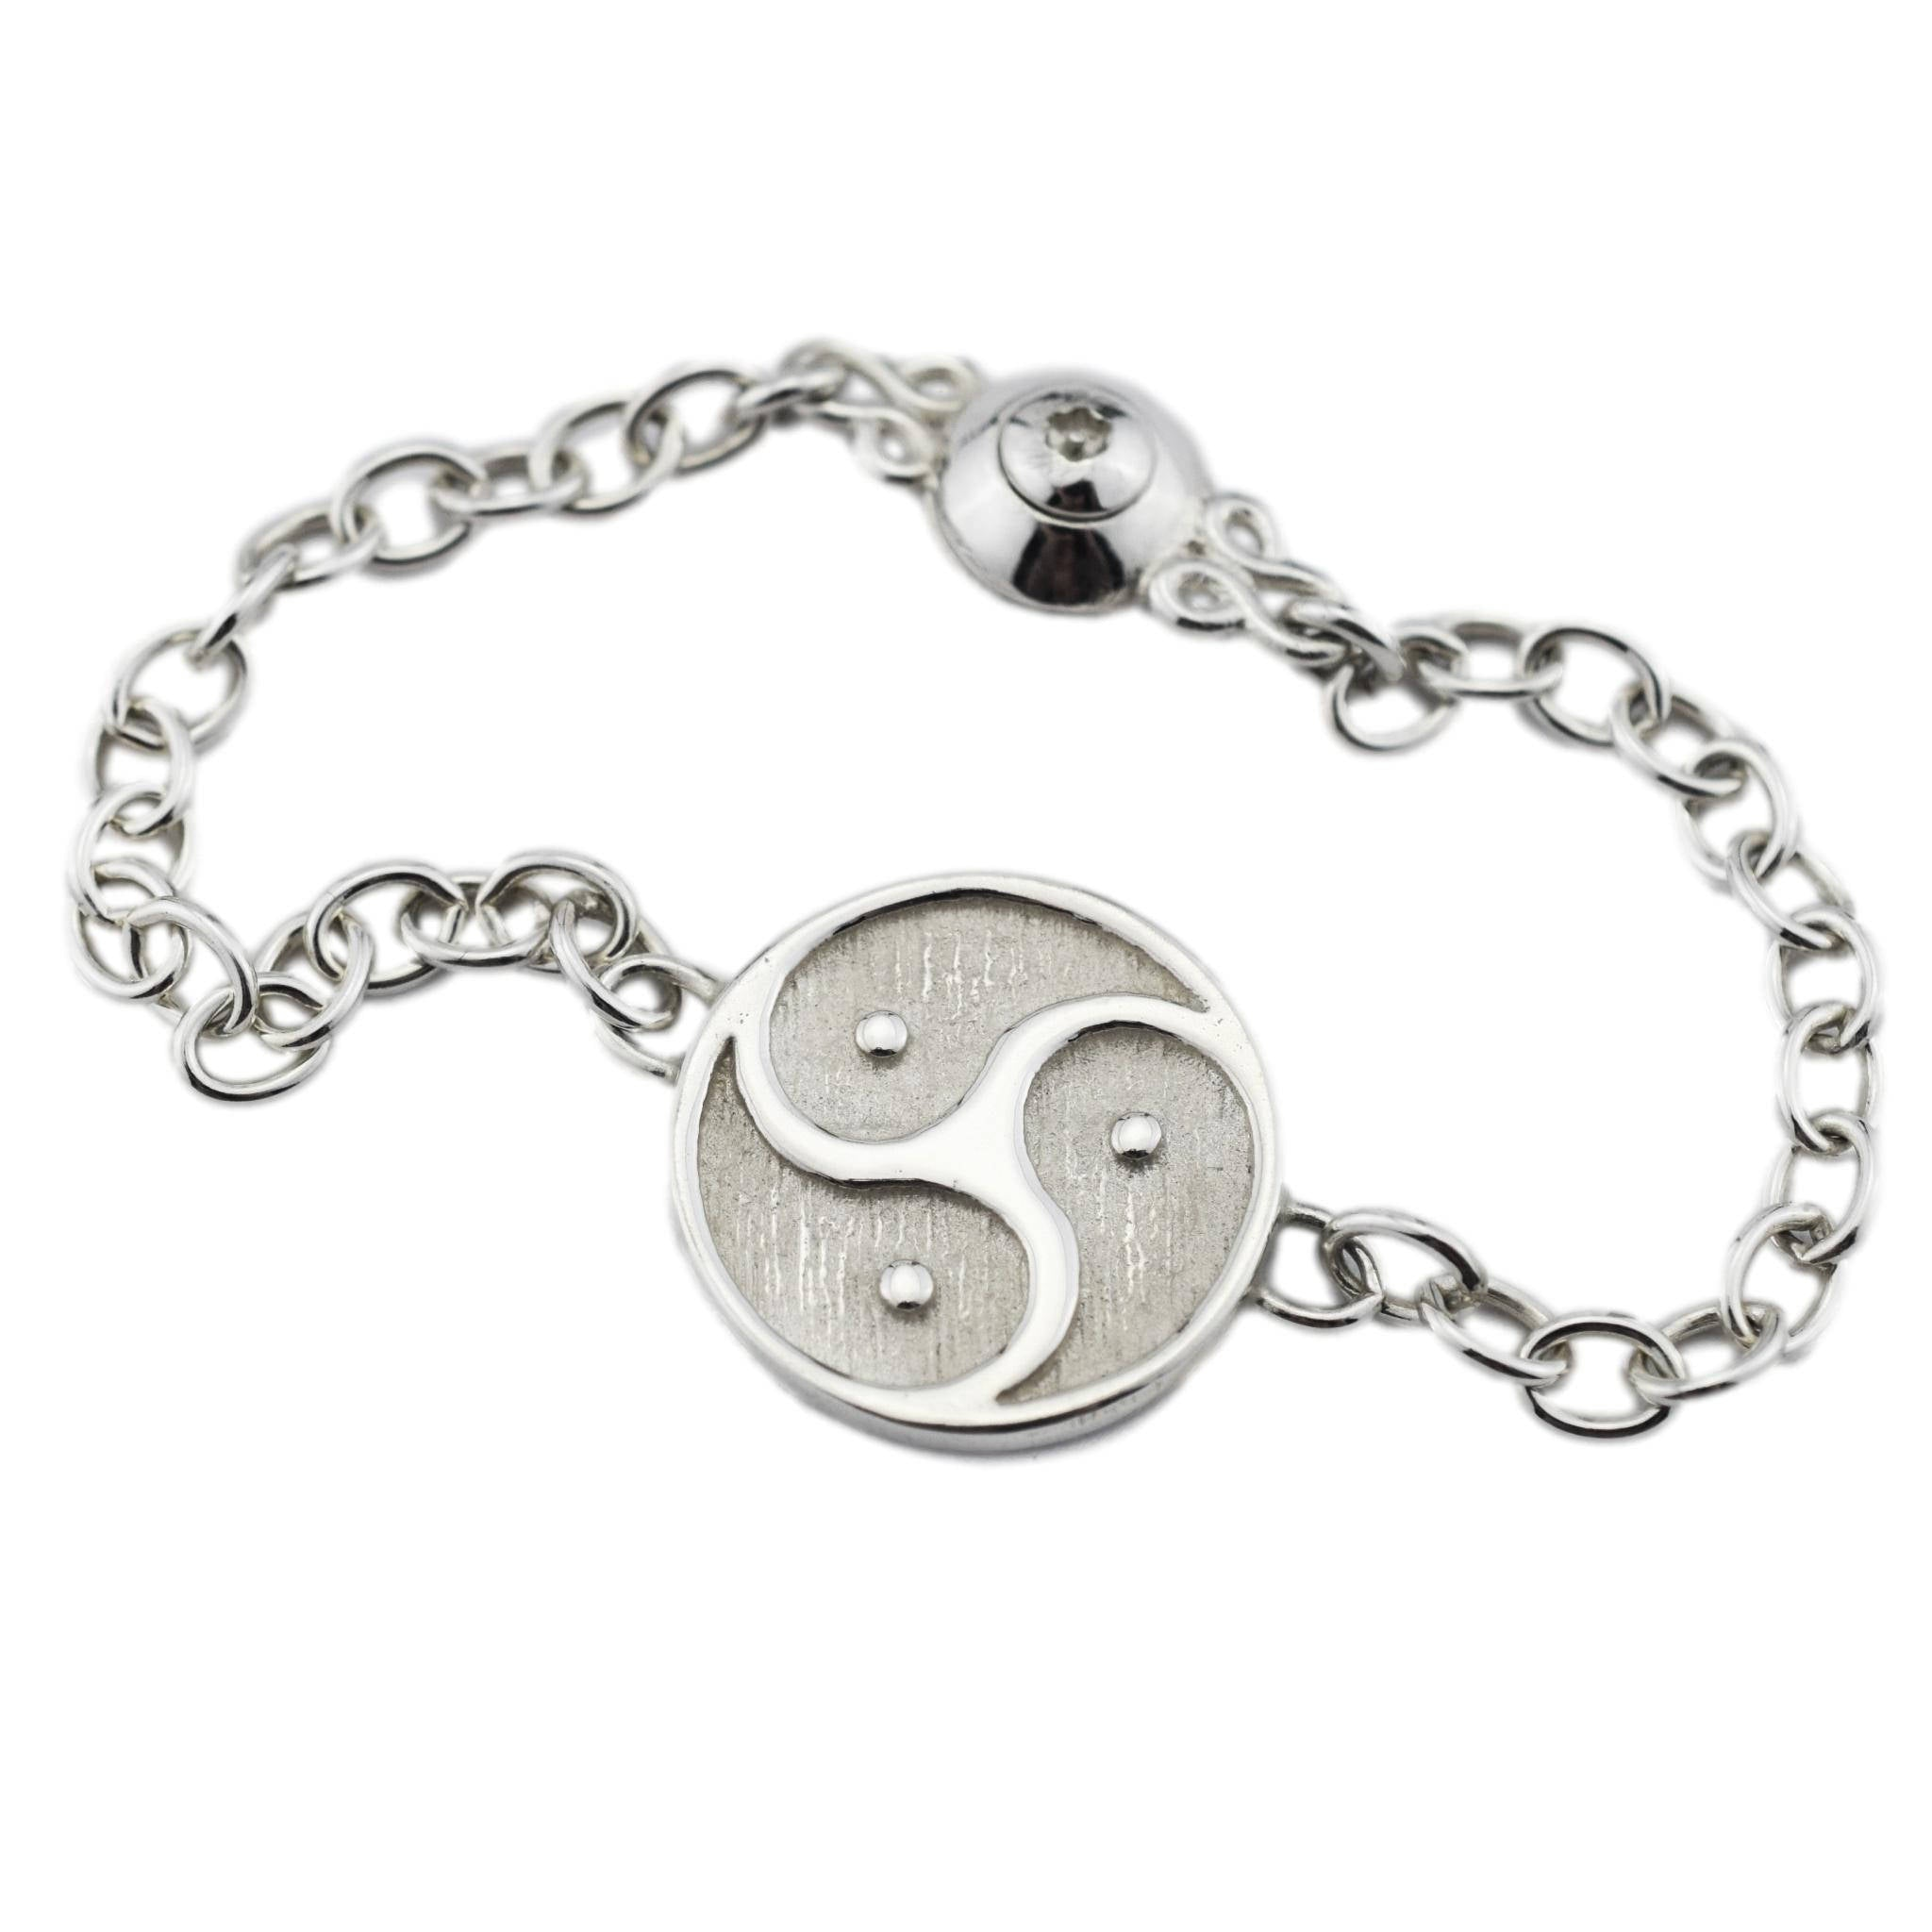 Solid 925 Sterling Silver In-line Medium Triskelion BDSM Ankle Day Collar